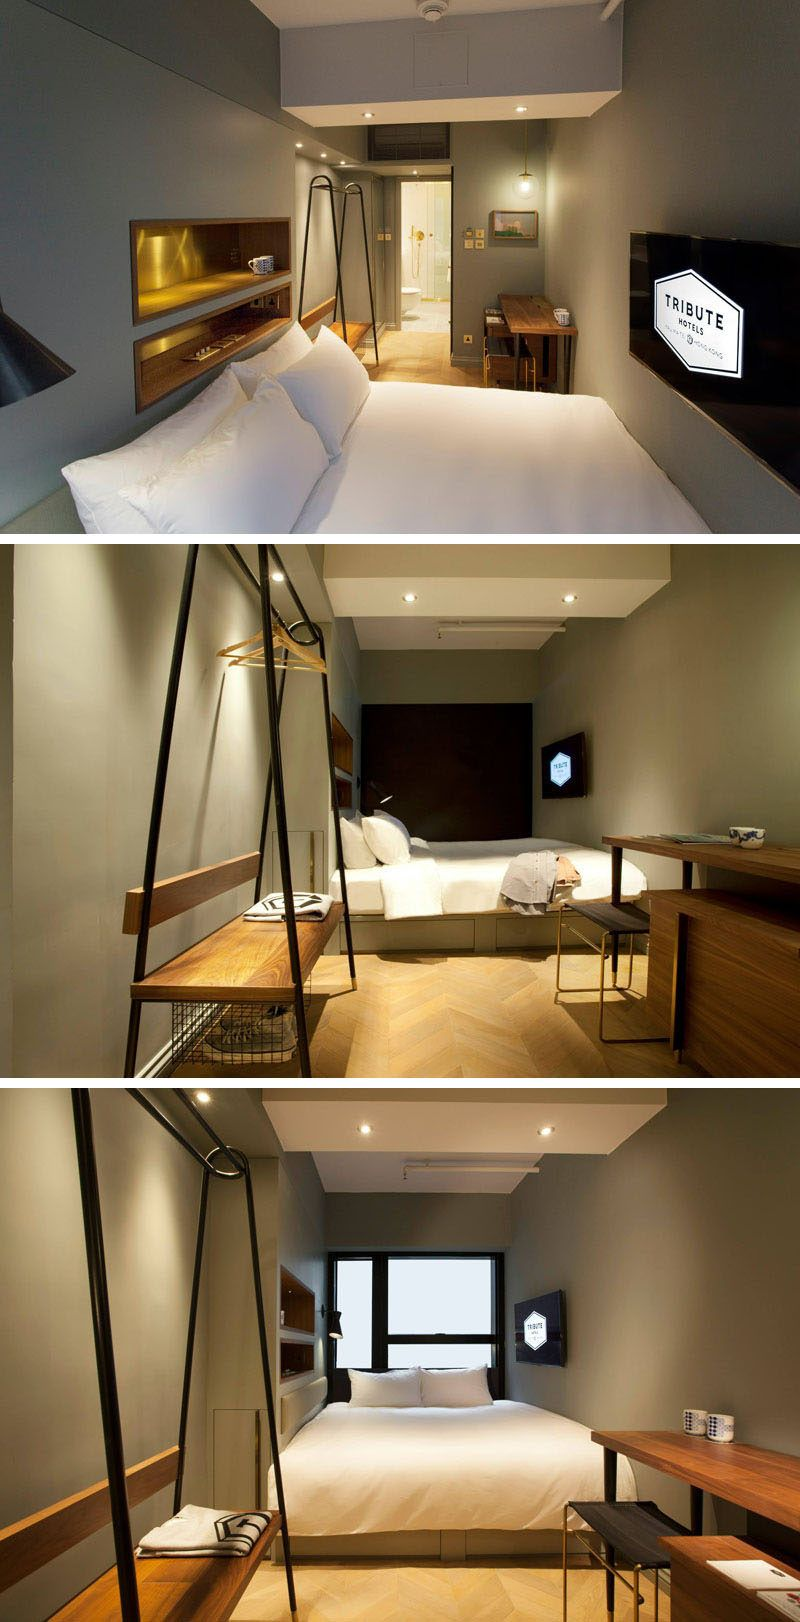 8 Small Hotel Rooms That Maximize Their Tiny Space Dekorasi